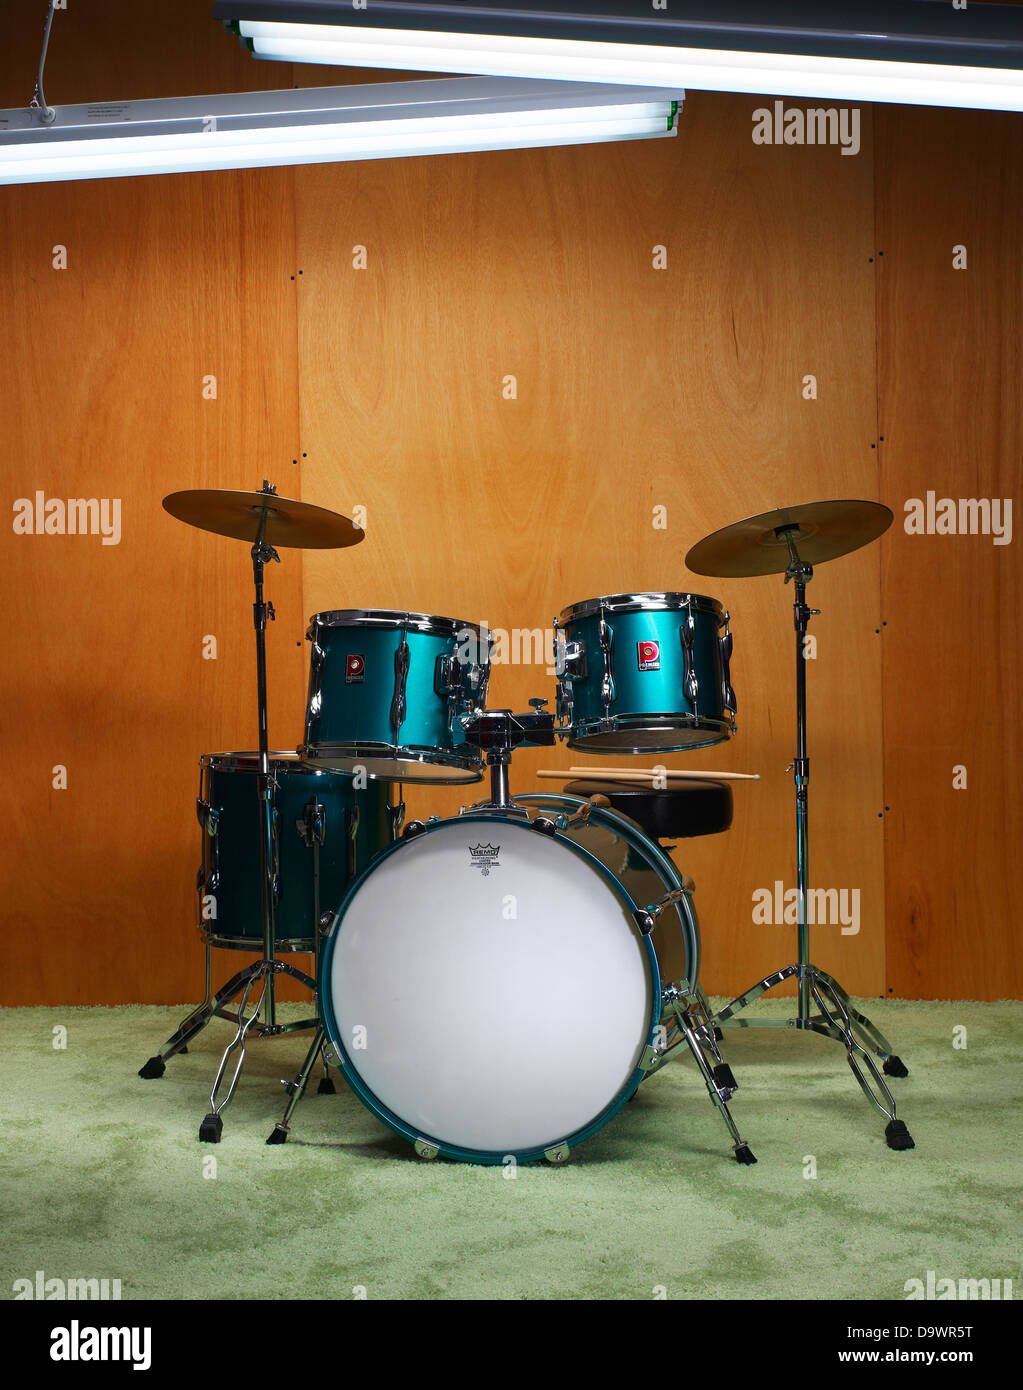 drums - Stock Image